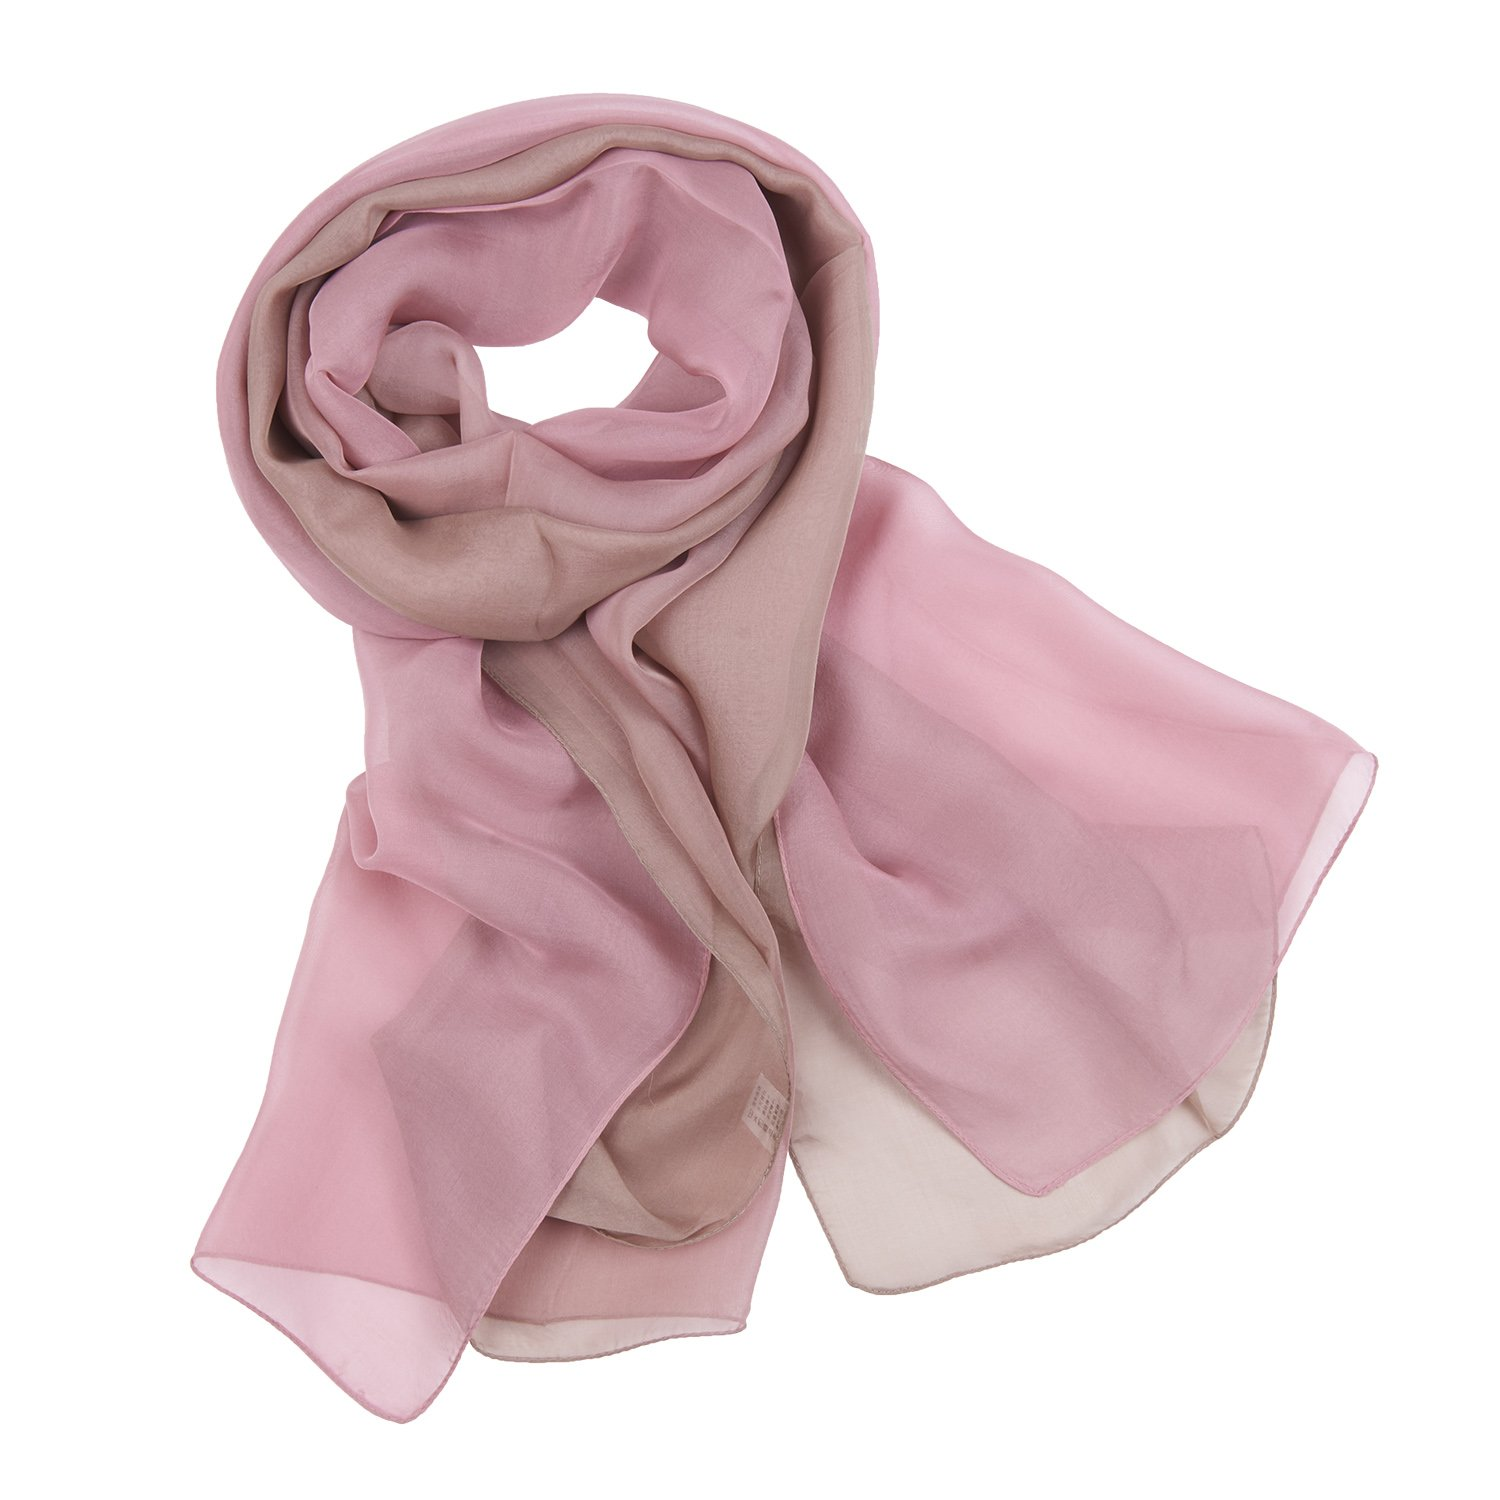 Bicolored Silk Shawl Wrap Smooth Gentle Special Vogue Light Long Girls (Pink)